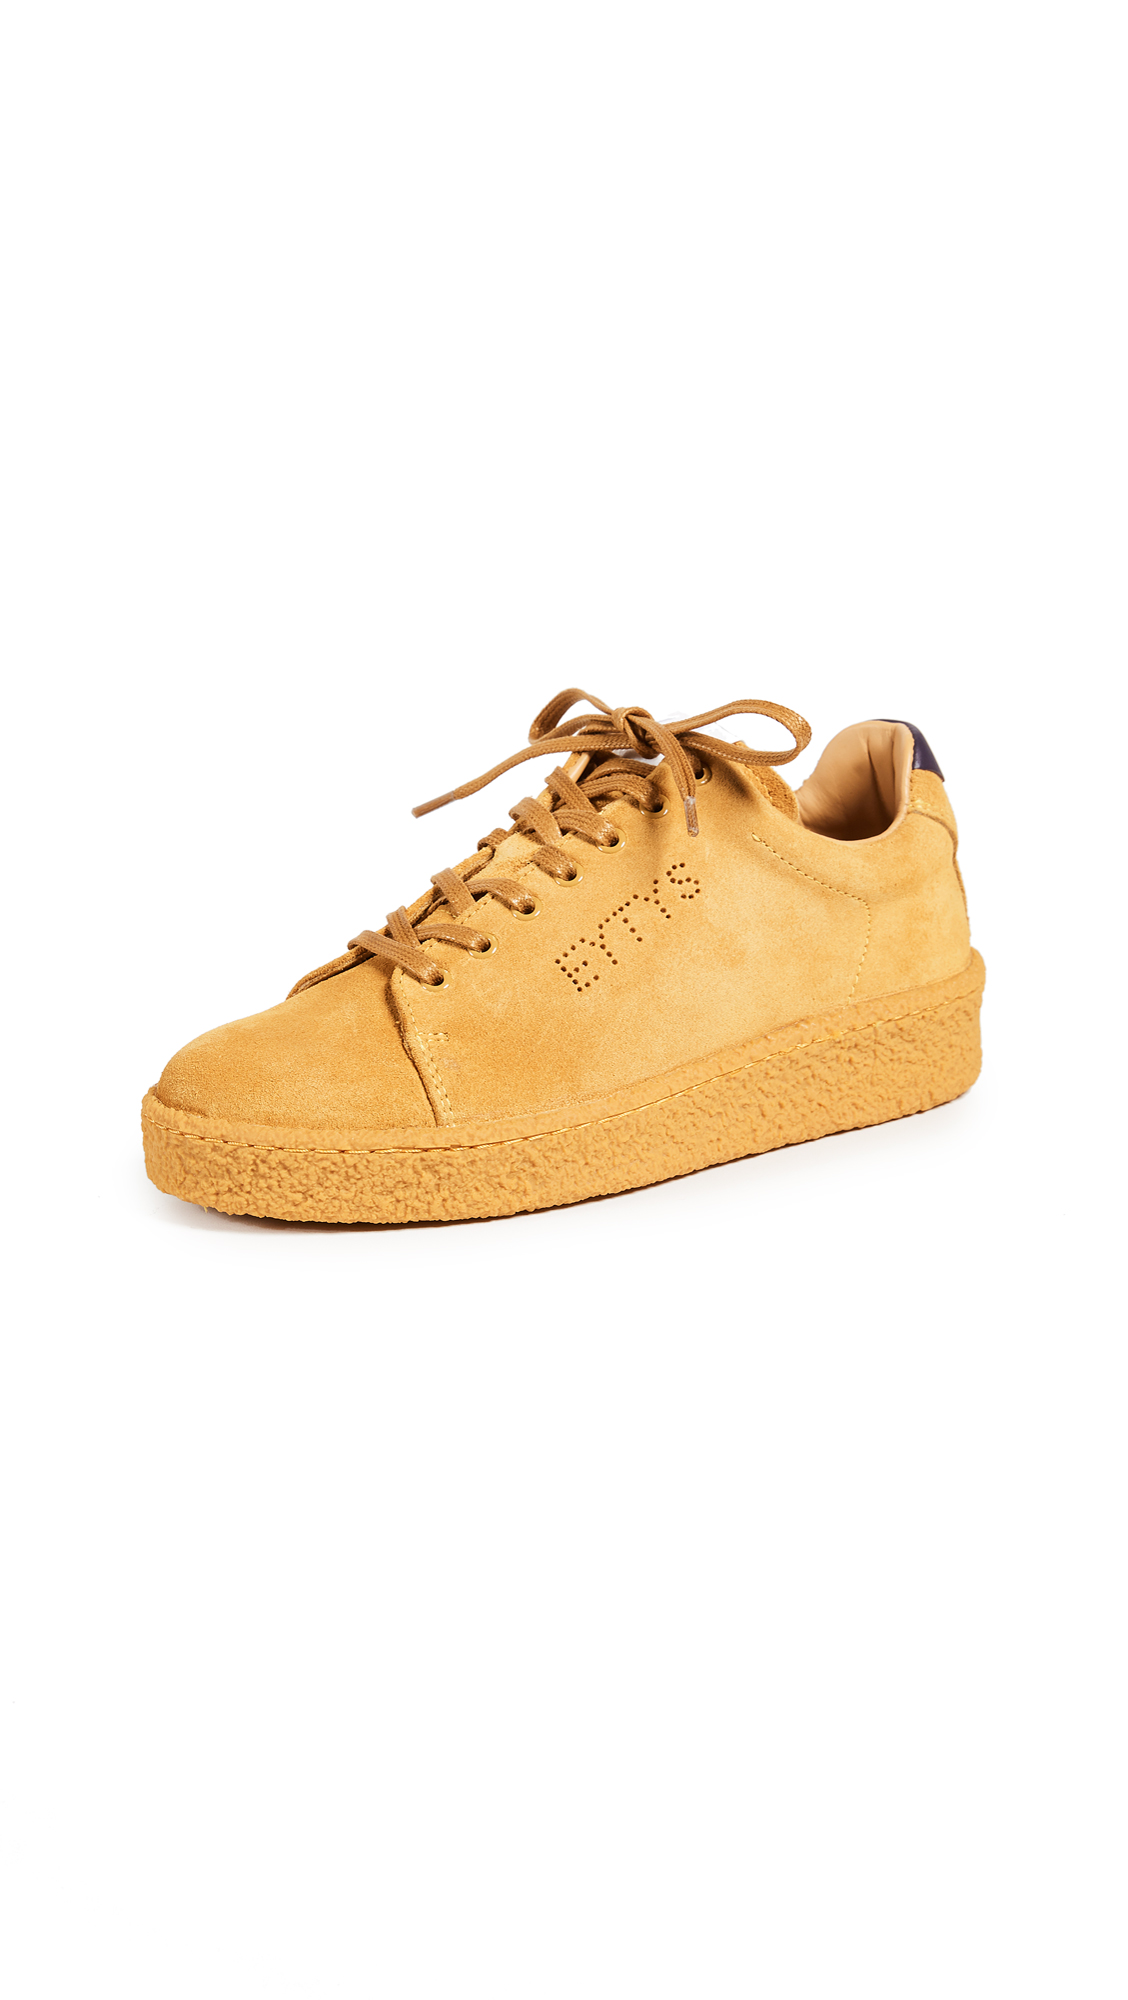 Eytys Ace Suede Sneakers - Mimosa